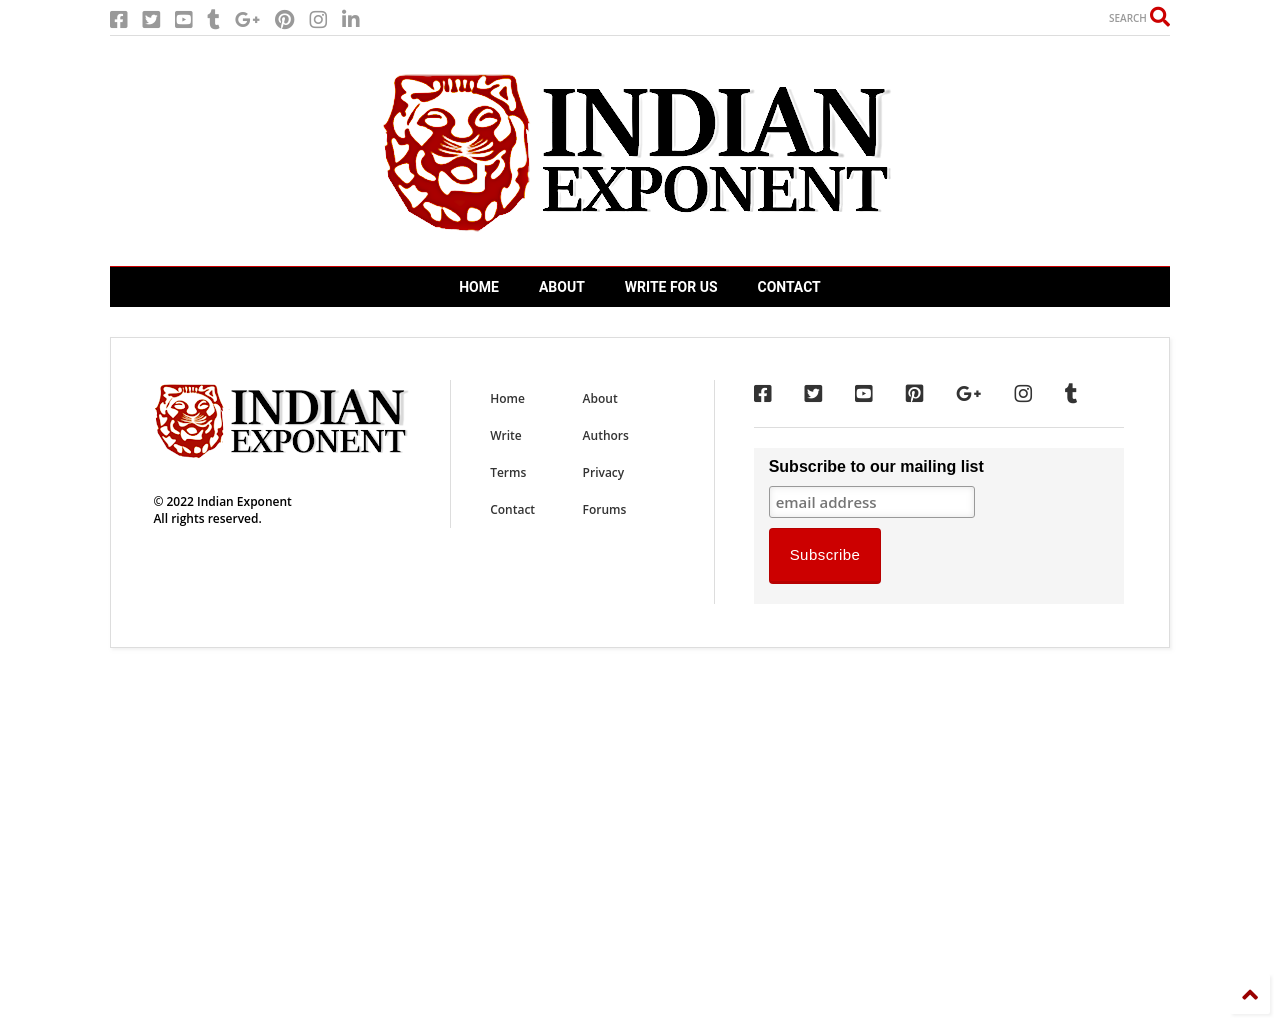 Indian Exponent